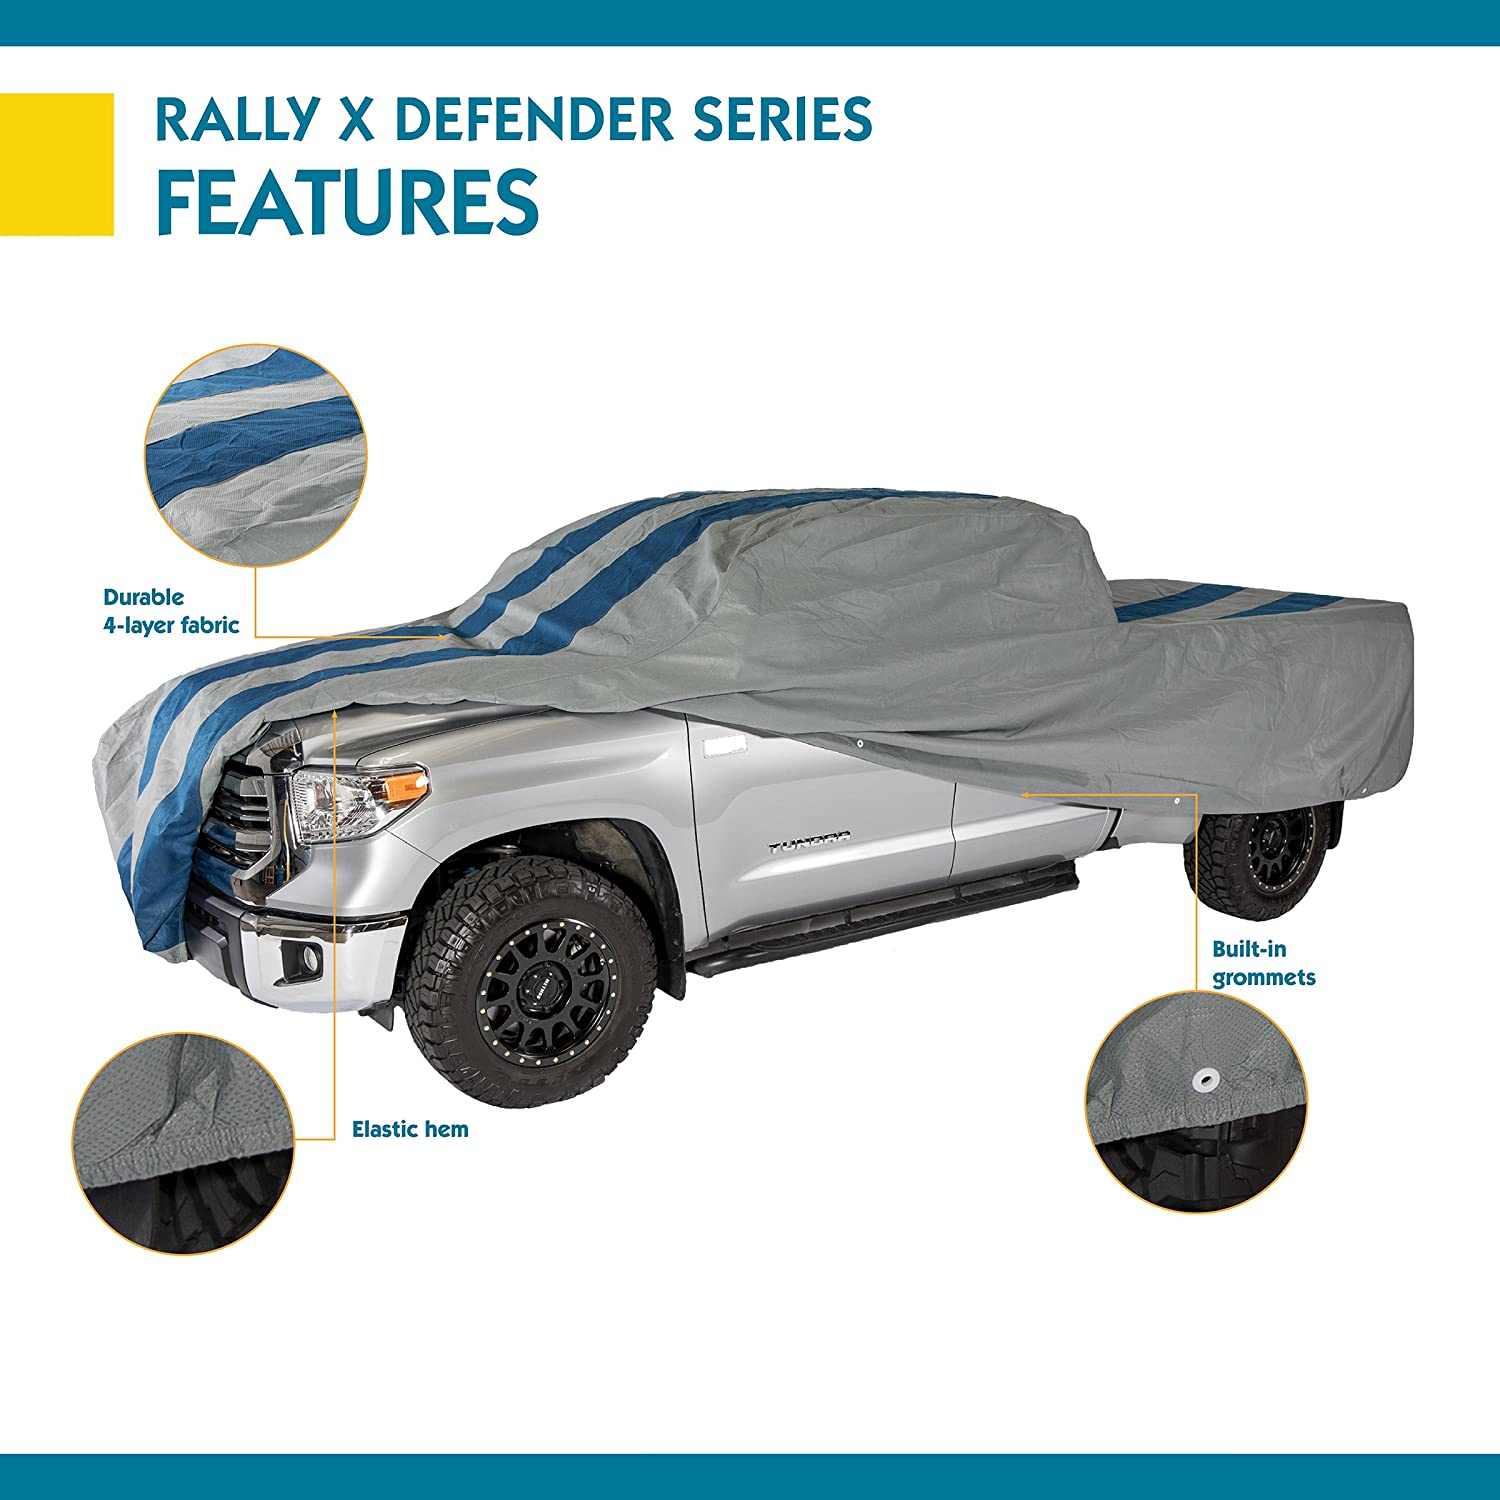 Duck Covers Rally X Defender Truck Cover For Crew Cab Dually Long Bed Trucks up to 22 ft L